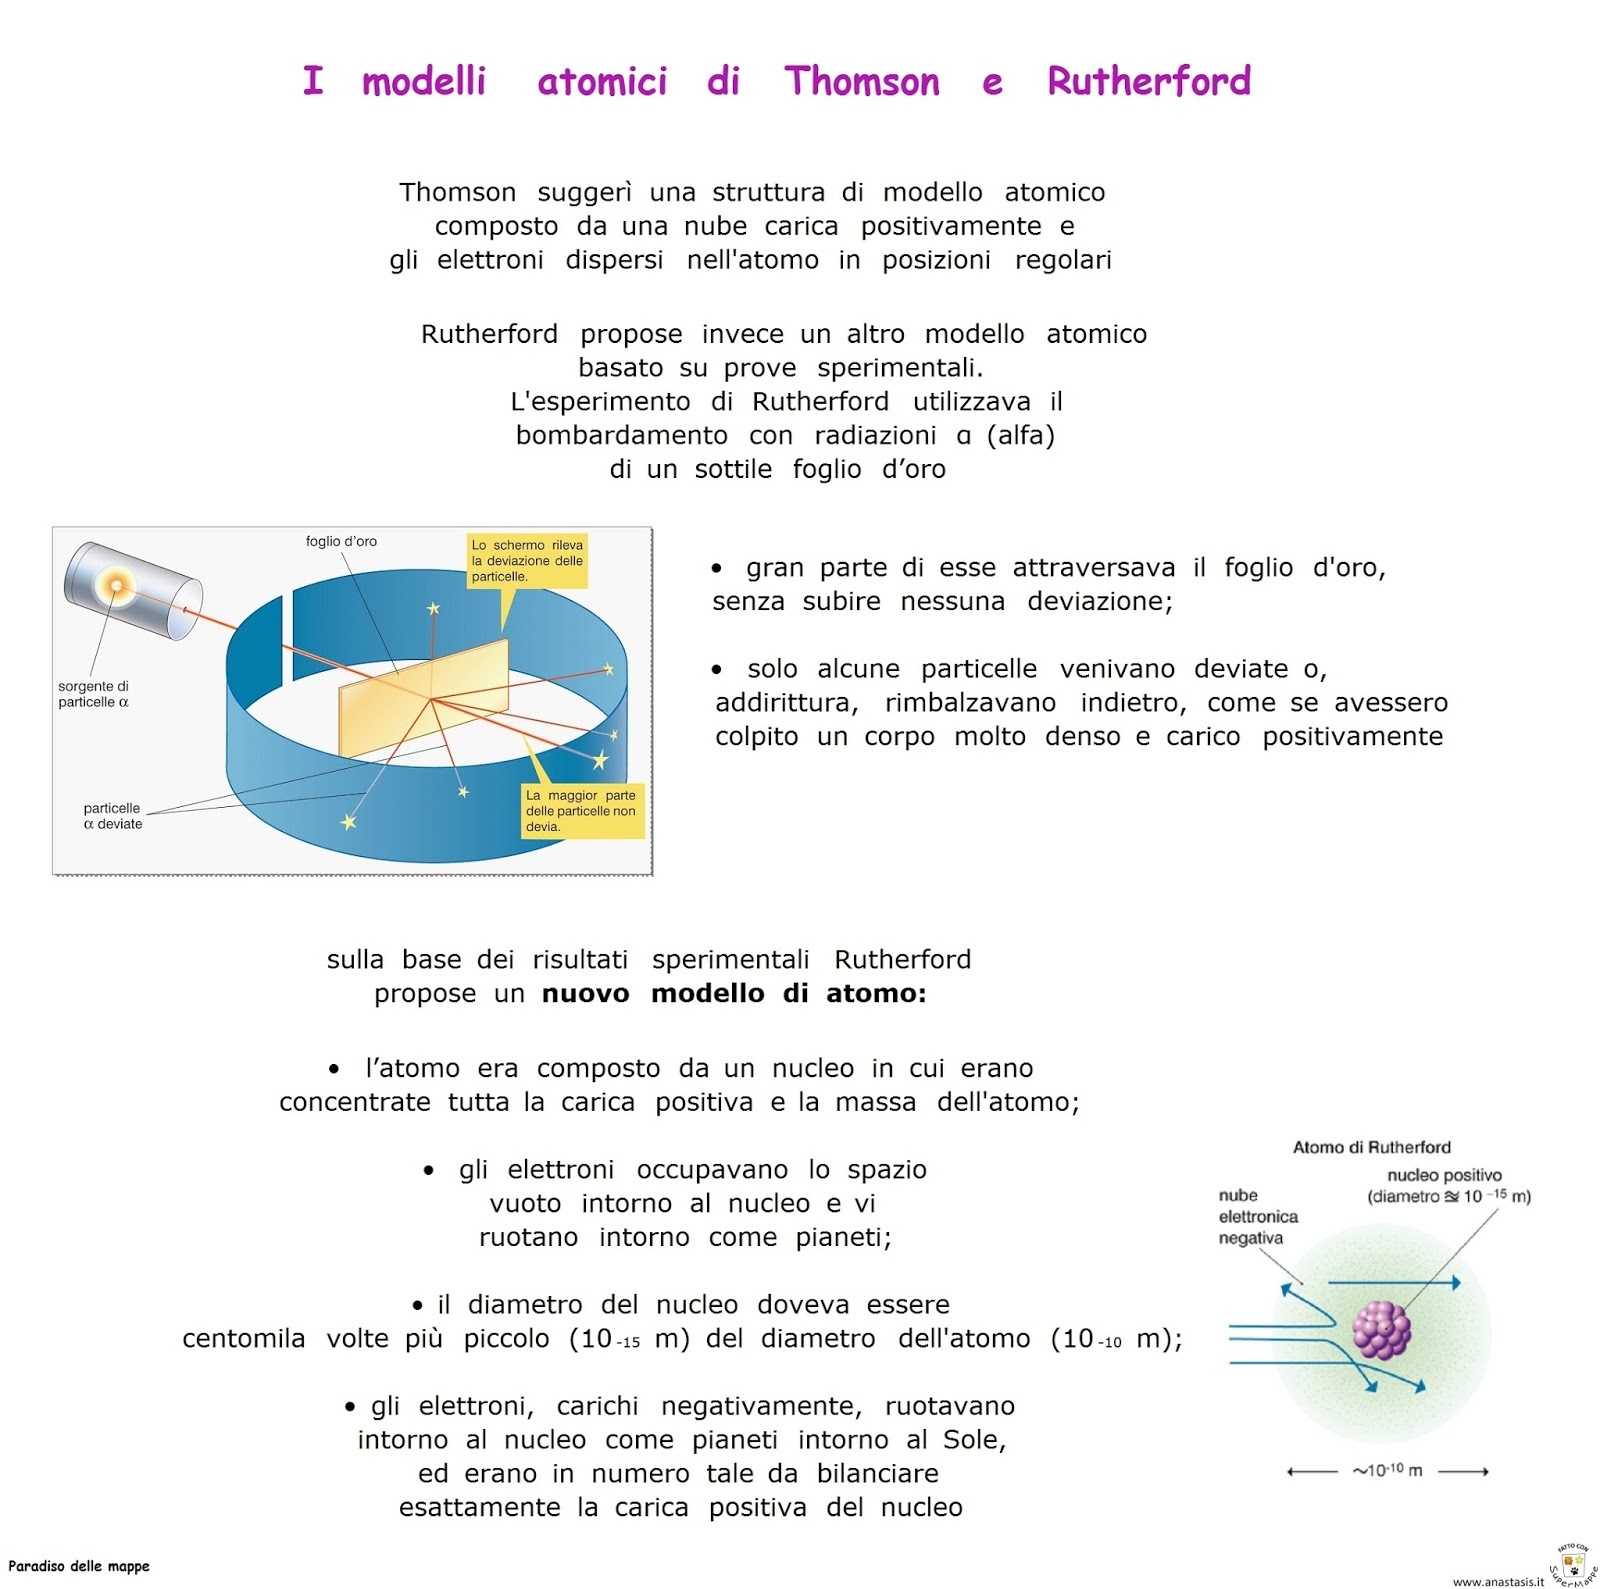 shareholders agreement template free australia dating: il modello atomico di bohr yahoo dating